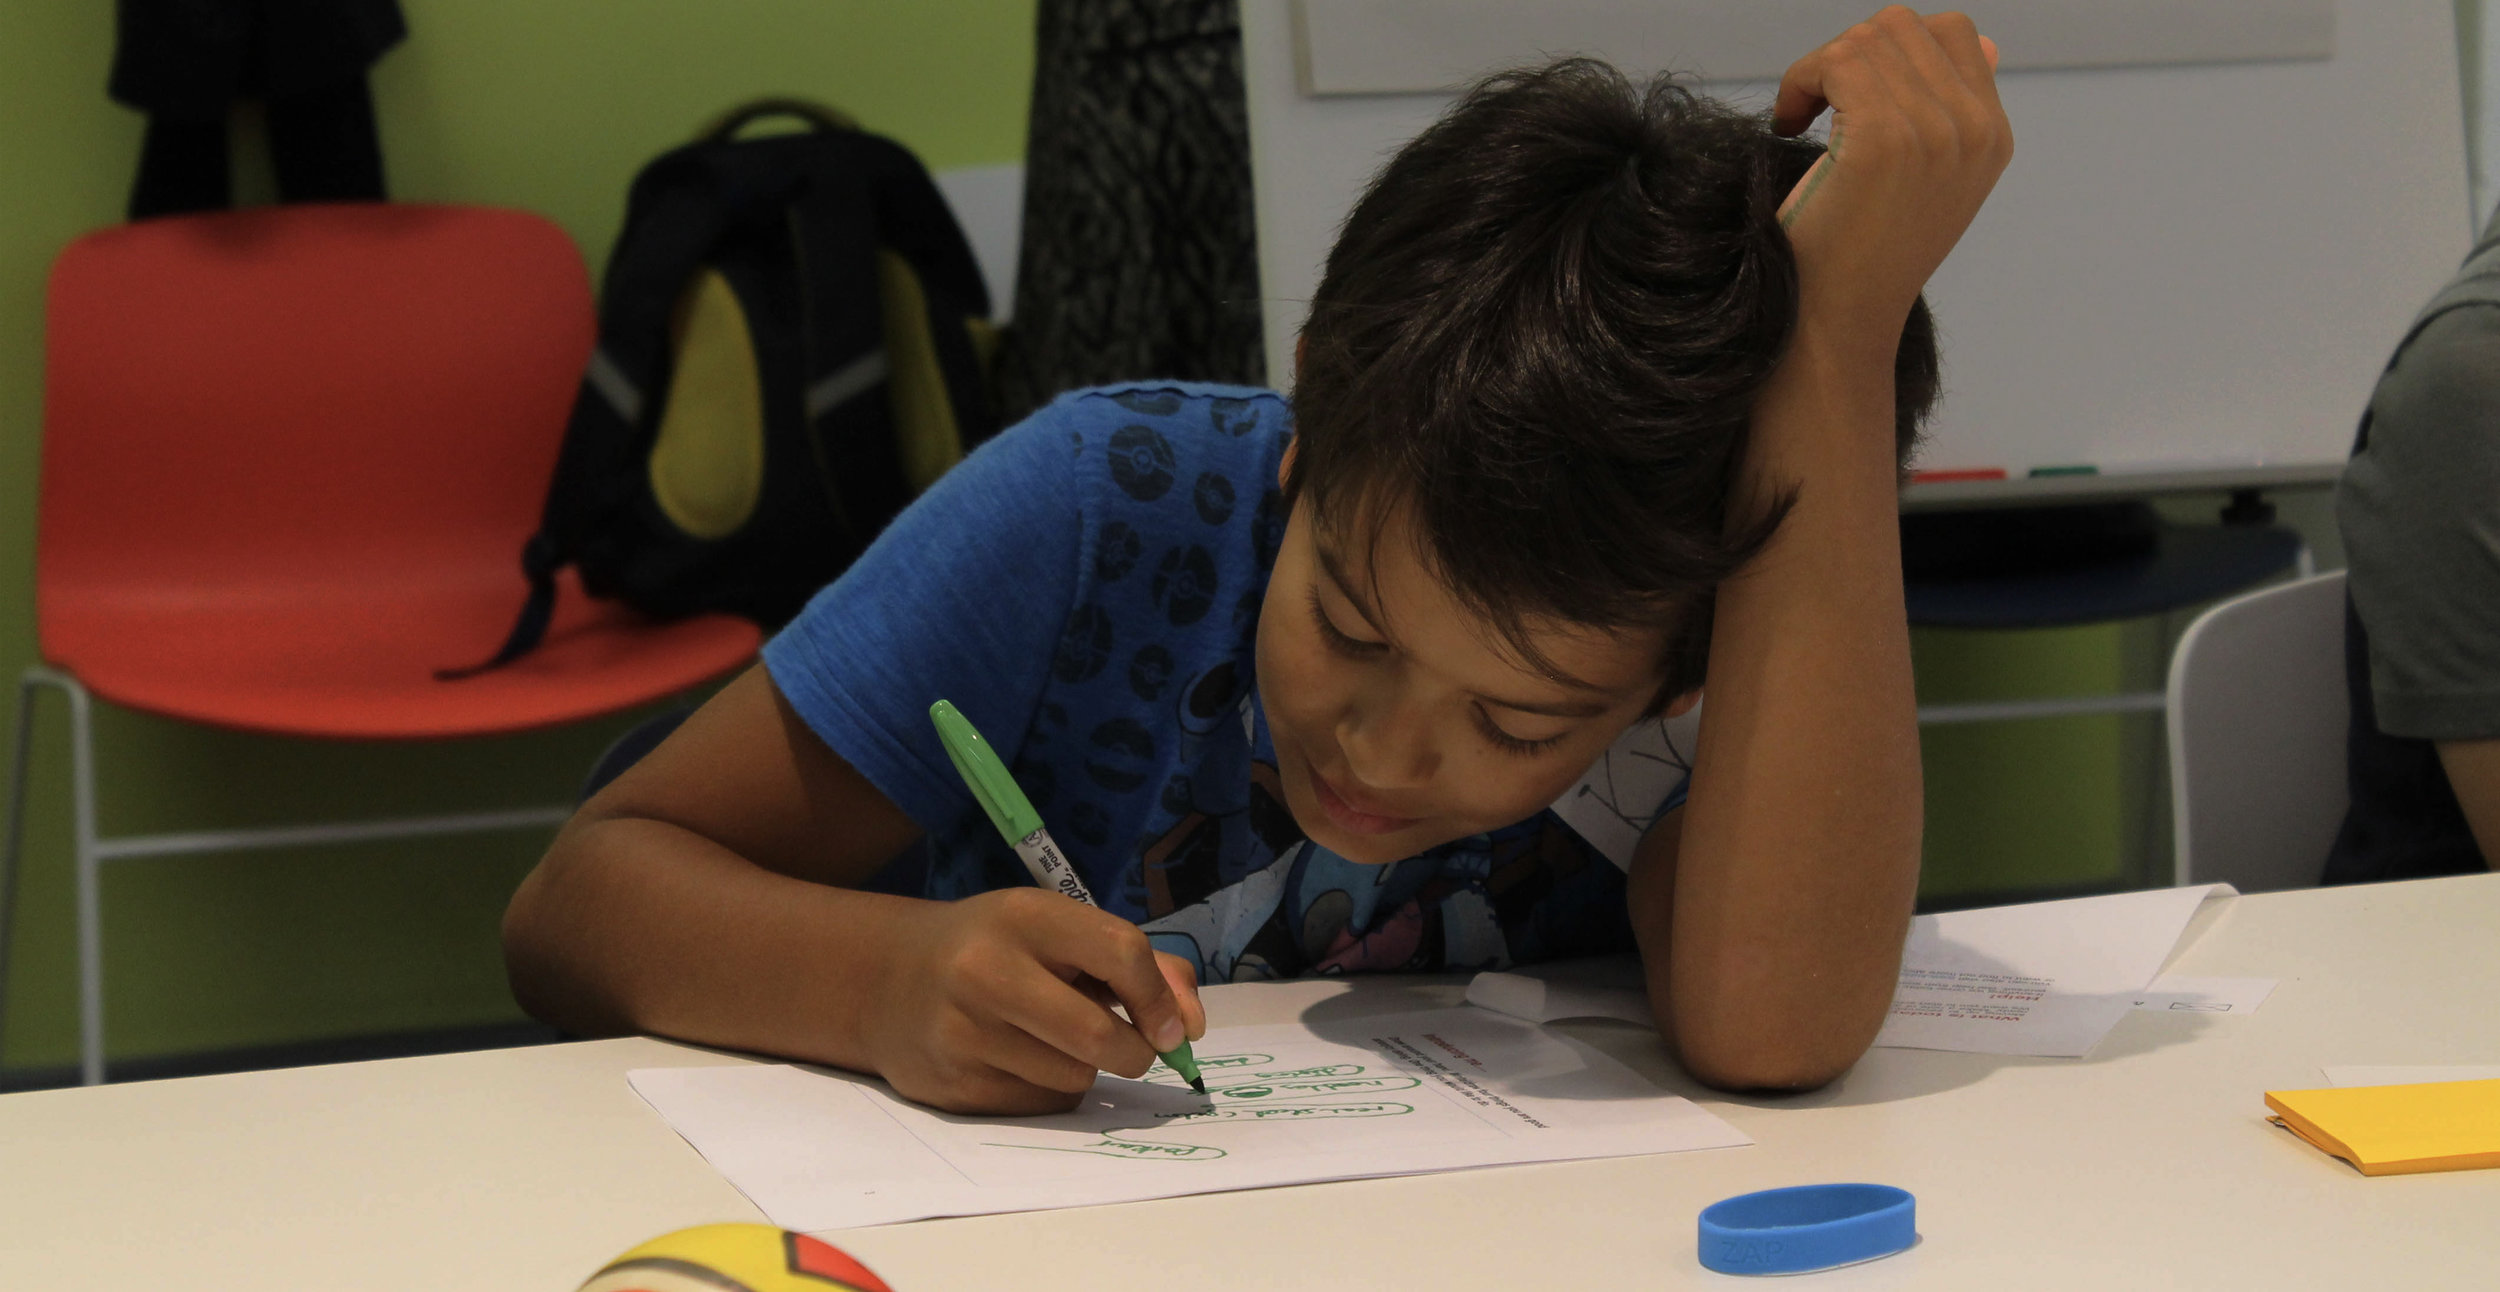 Kidscape: The anti-bullying charity that helps -